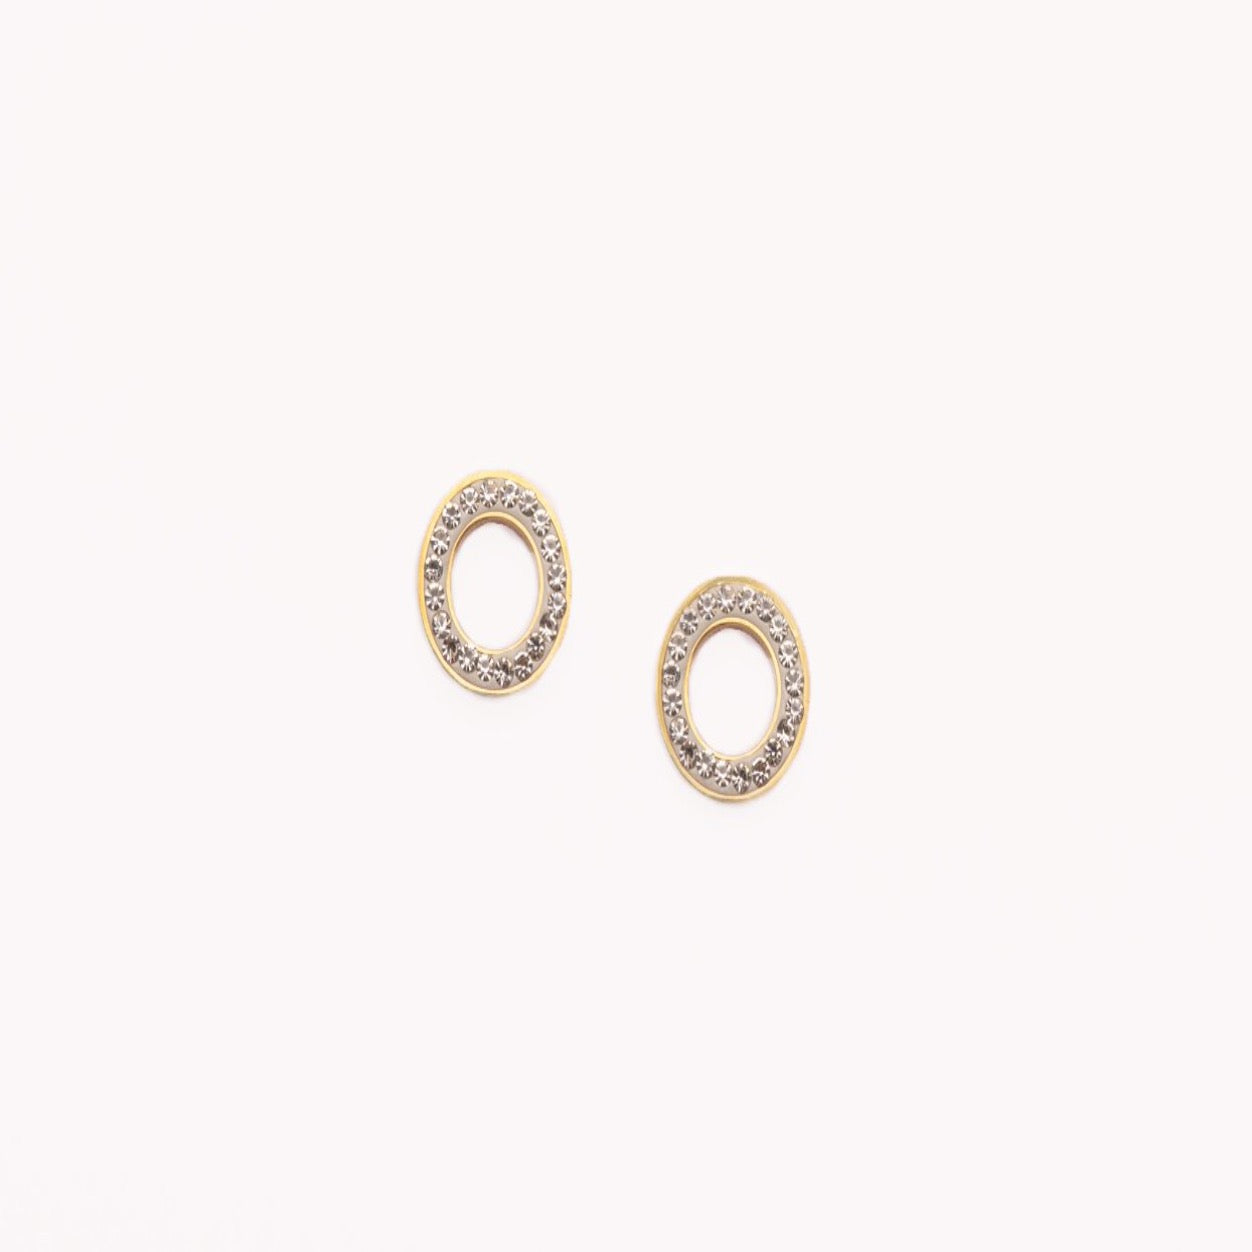 Stainless steel circle studs with Austrian crystals